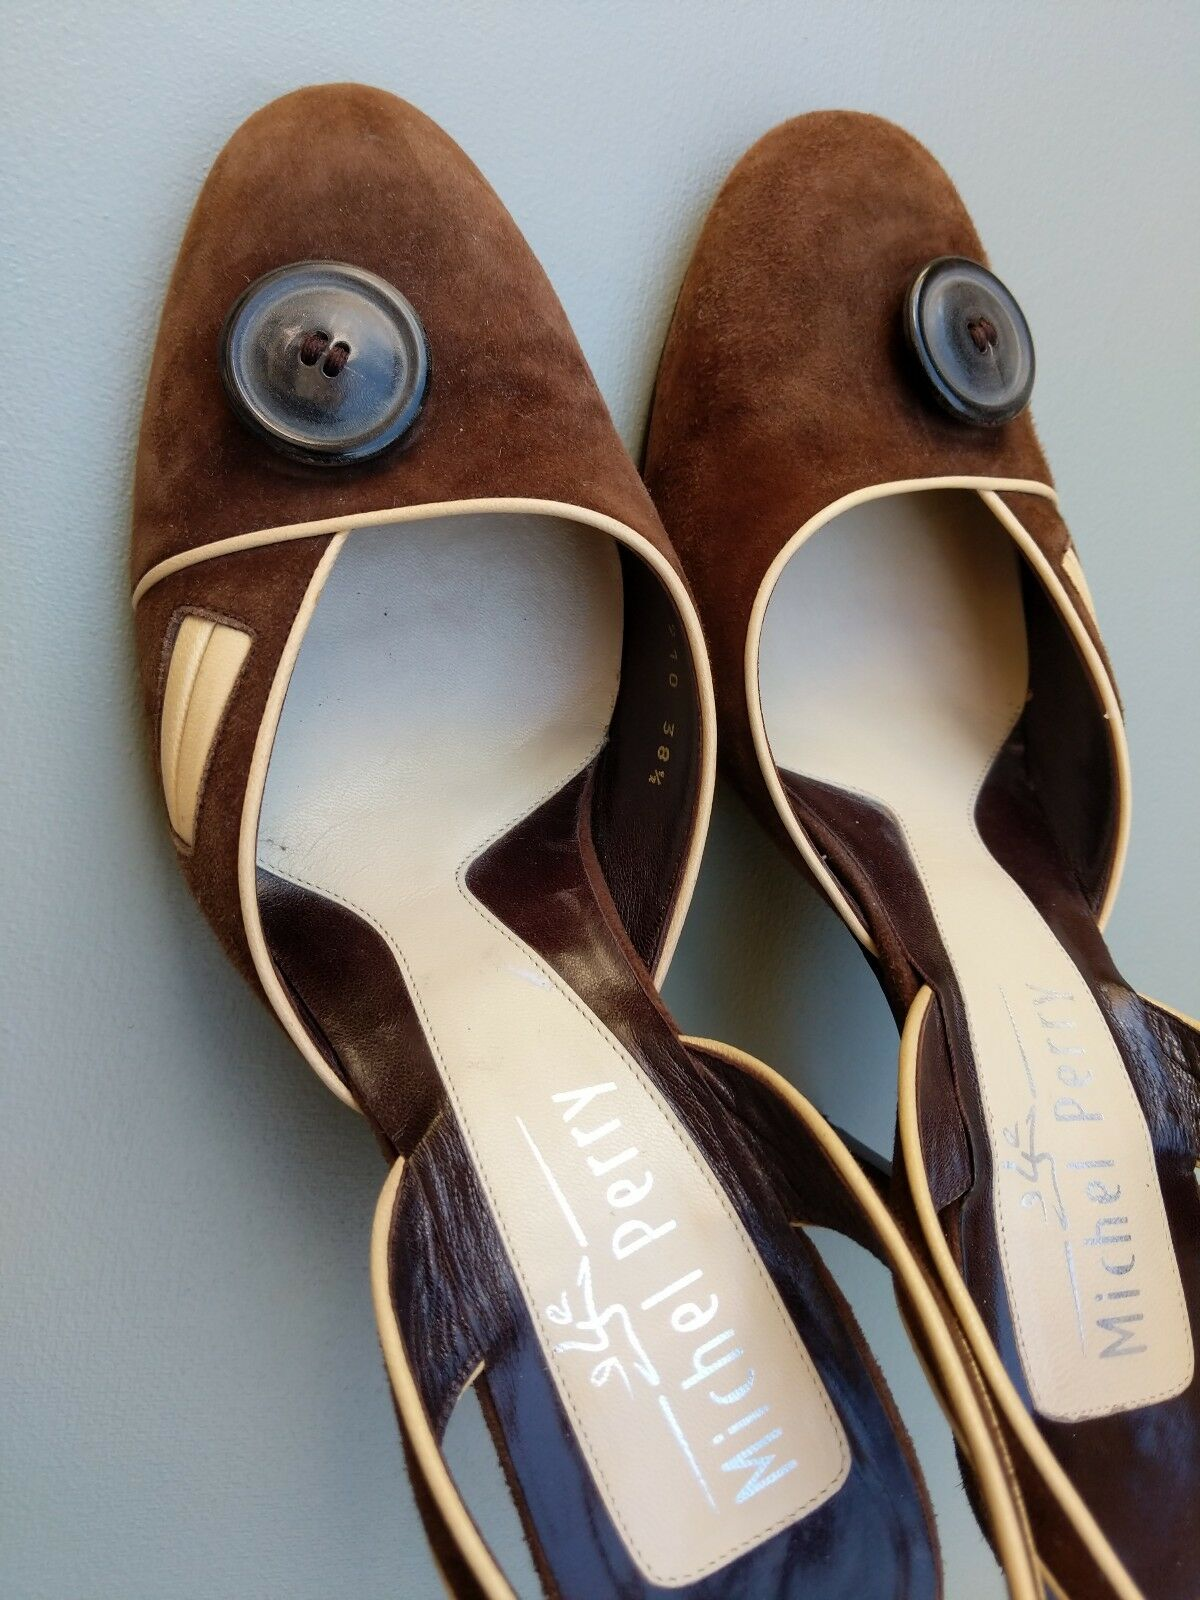 Michel Perry Braun Suede and Leder Slingbacks Court 5.5 Schuhes Größe 38.5 UK 5.5 Court 877ab5